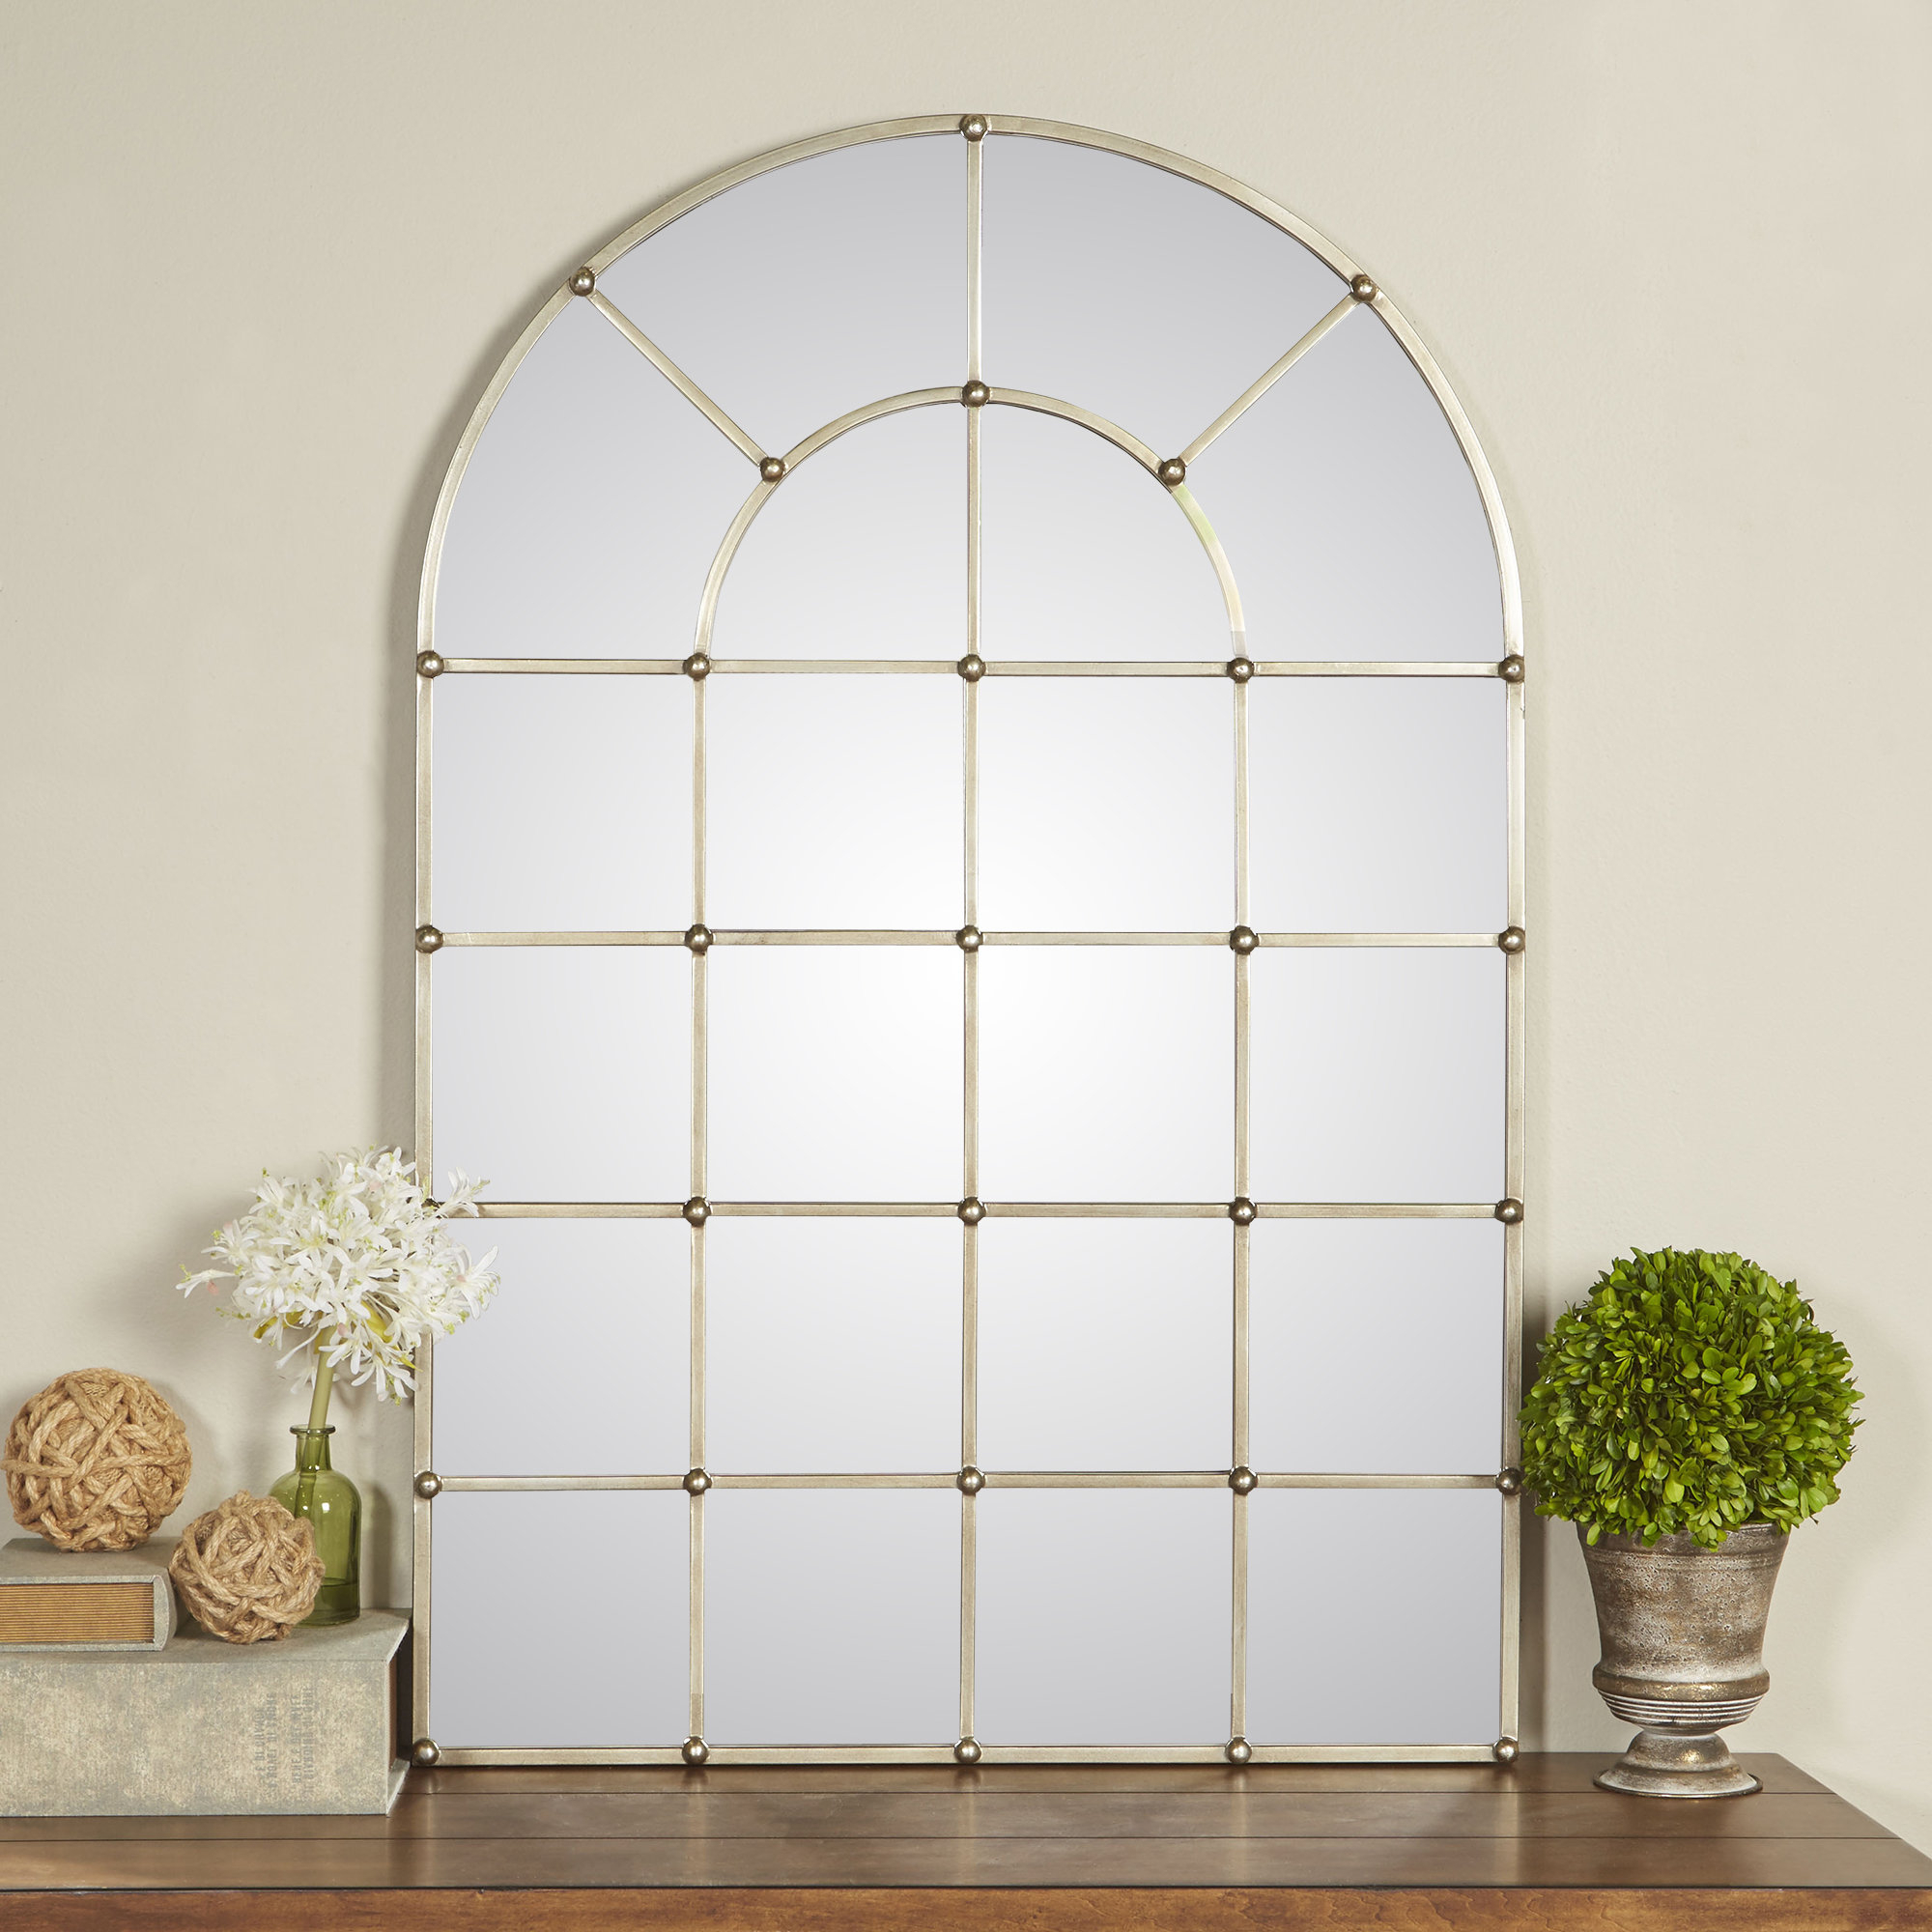 One Allium Way Metal Arch Window Wall Mirror & Reviews Throughout Most Popular Metal Arch Window Wall Mirrors (View 18 of 20)